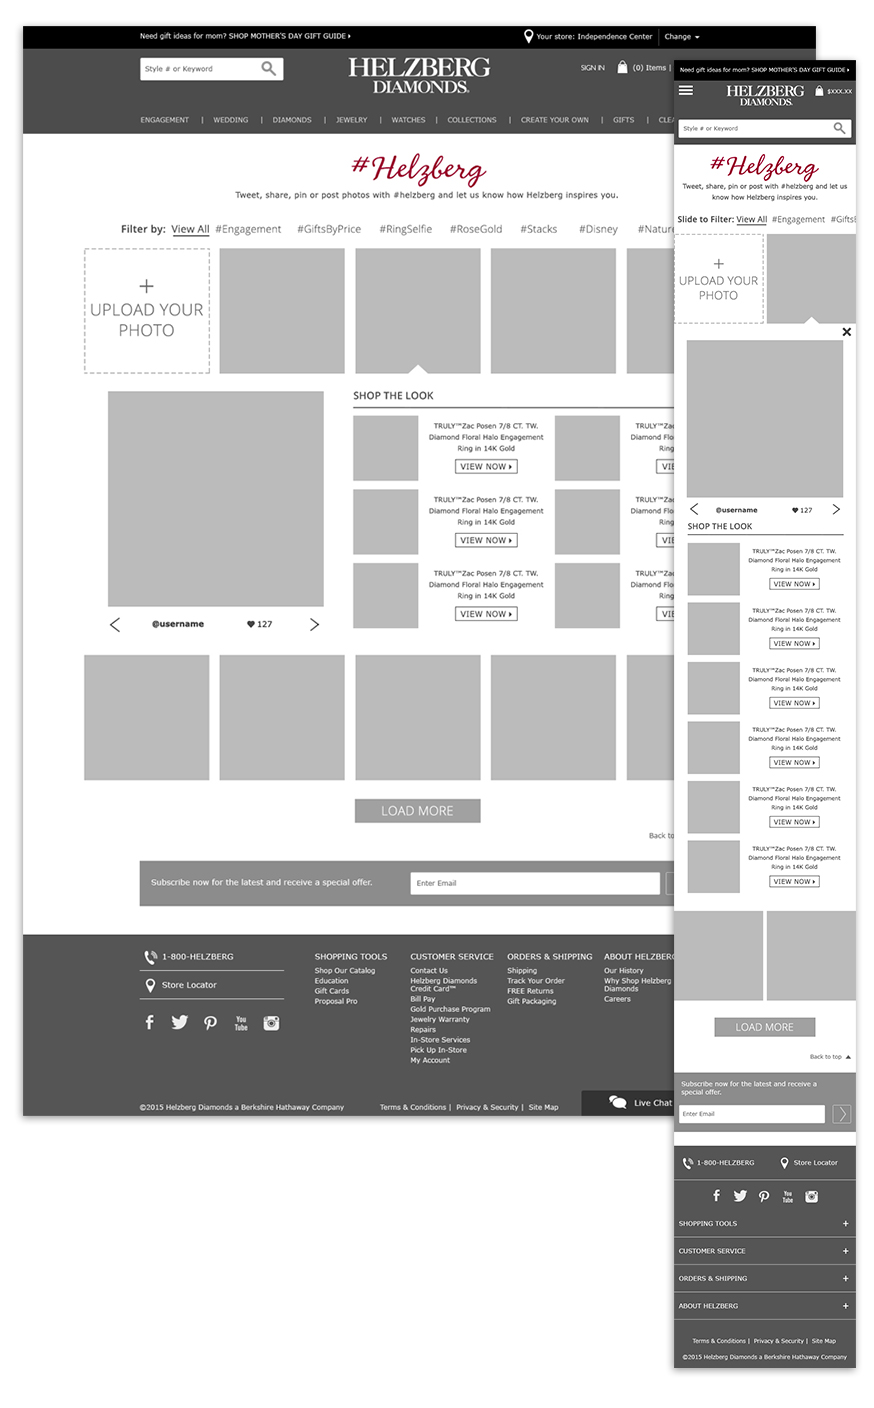 Curalate Gallery wireframe.  Click here  to view it live.  ©2017 Helzberg Diamonds® All Rights Reserved.